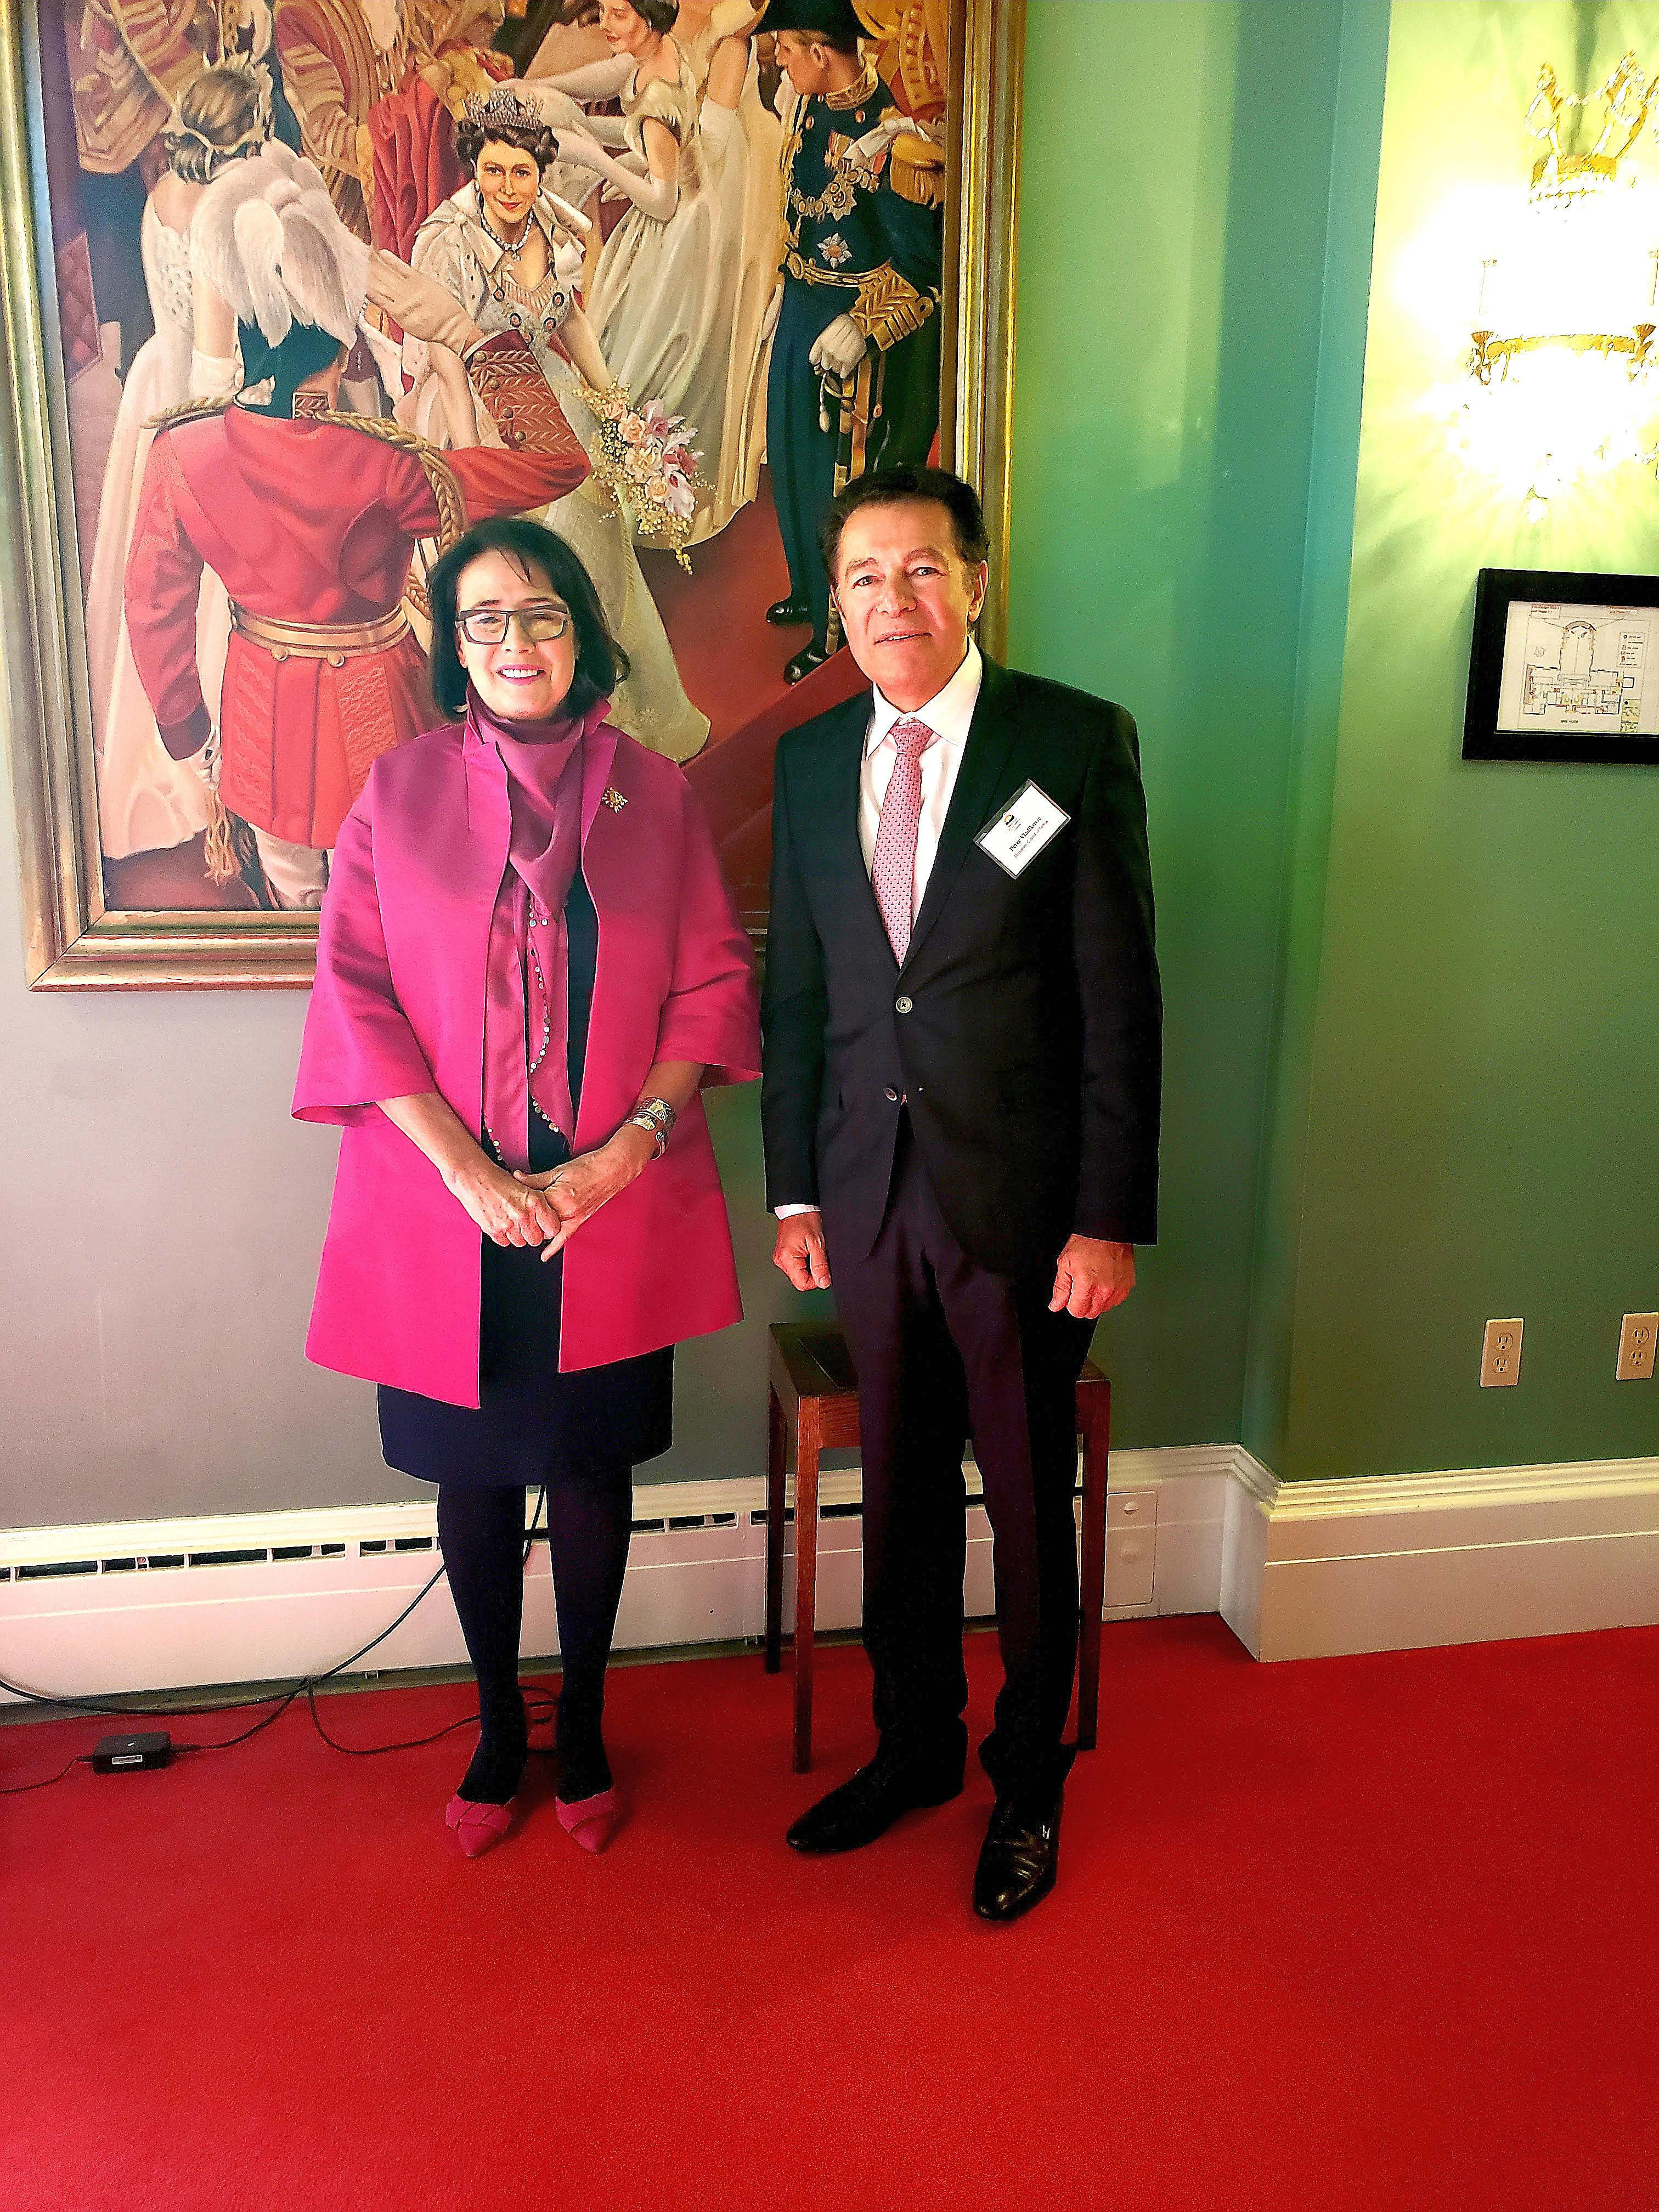 Mr. Peter Vladikovic, Honorary Consul of Serbia at reception for Heads of Mission to British Columbia